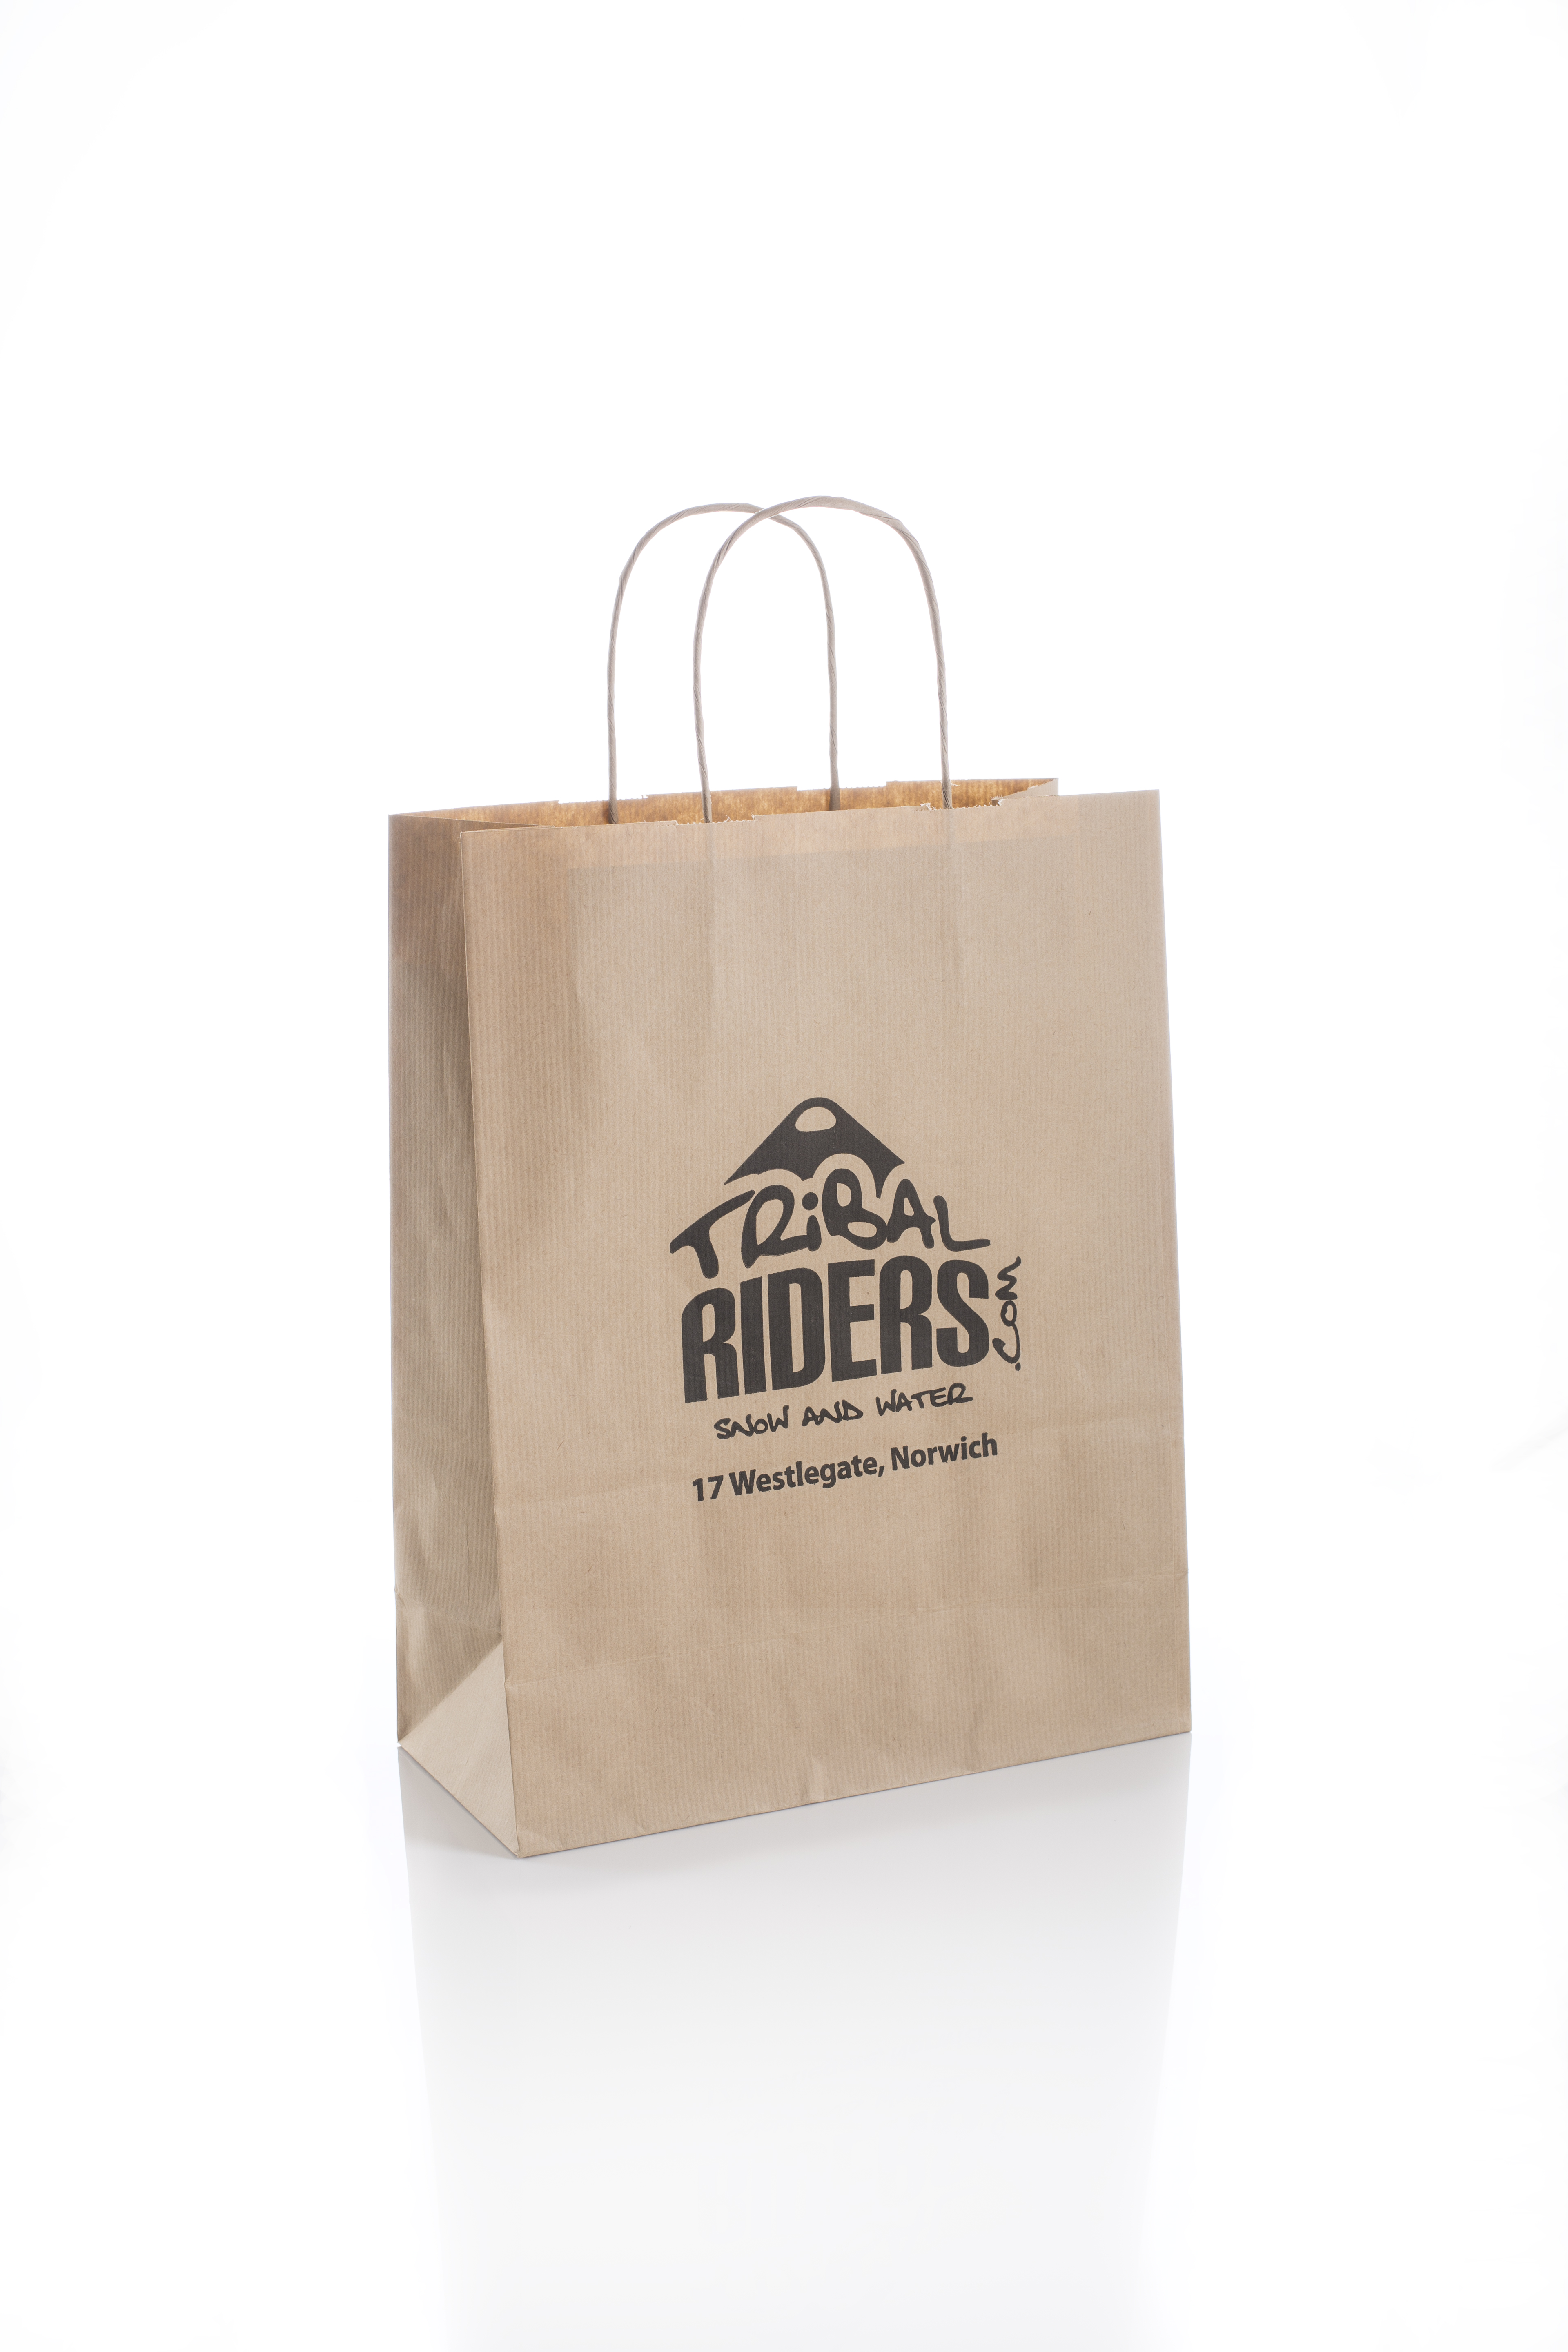 Trival Riders Branded Twisted Handle Kraft Paper Carrier